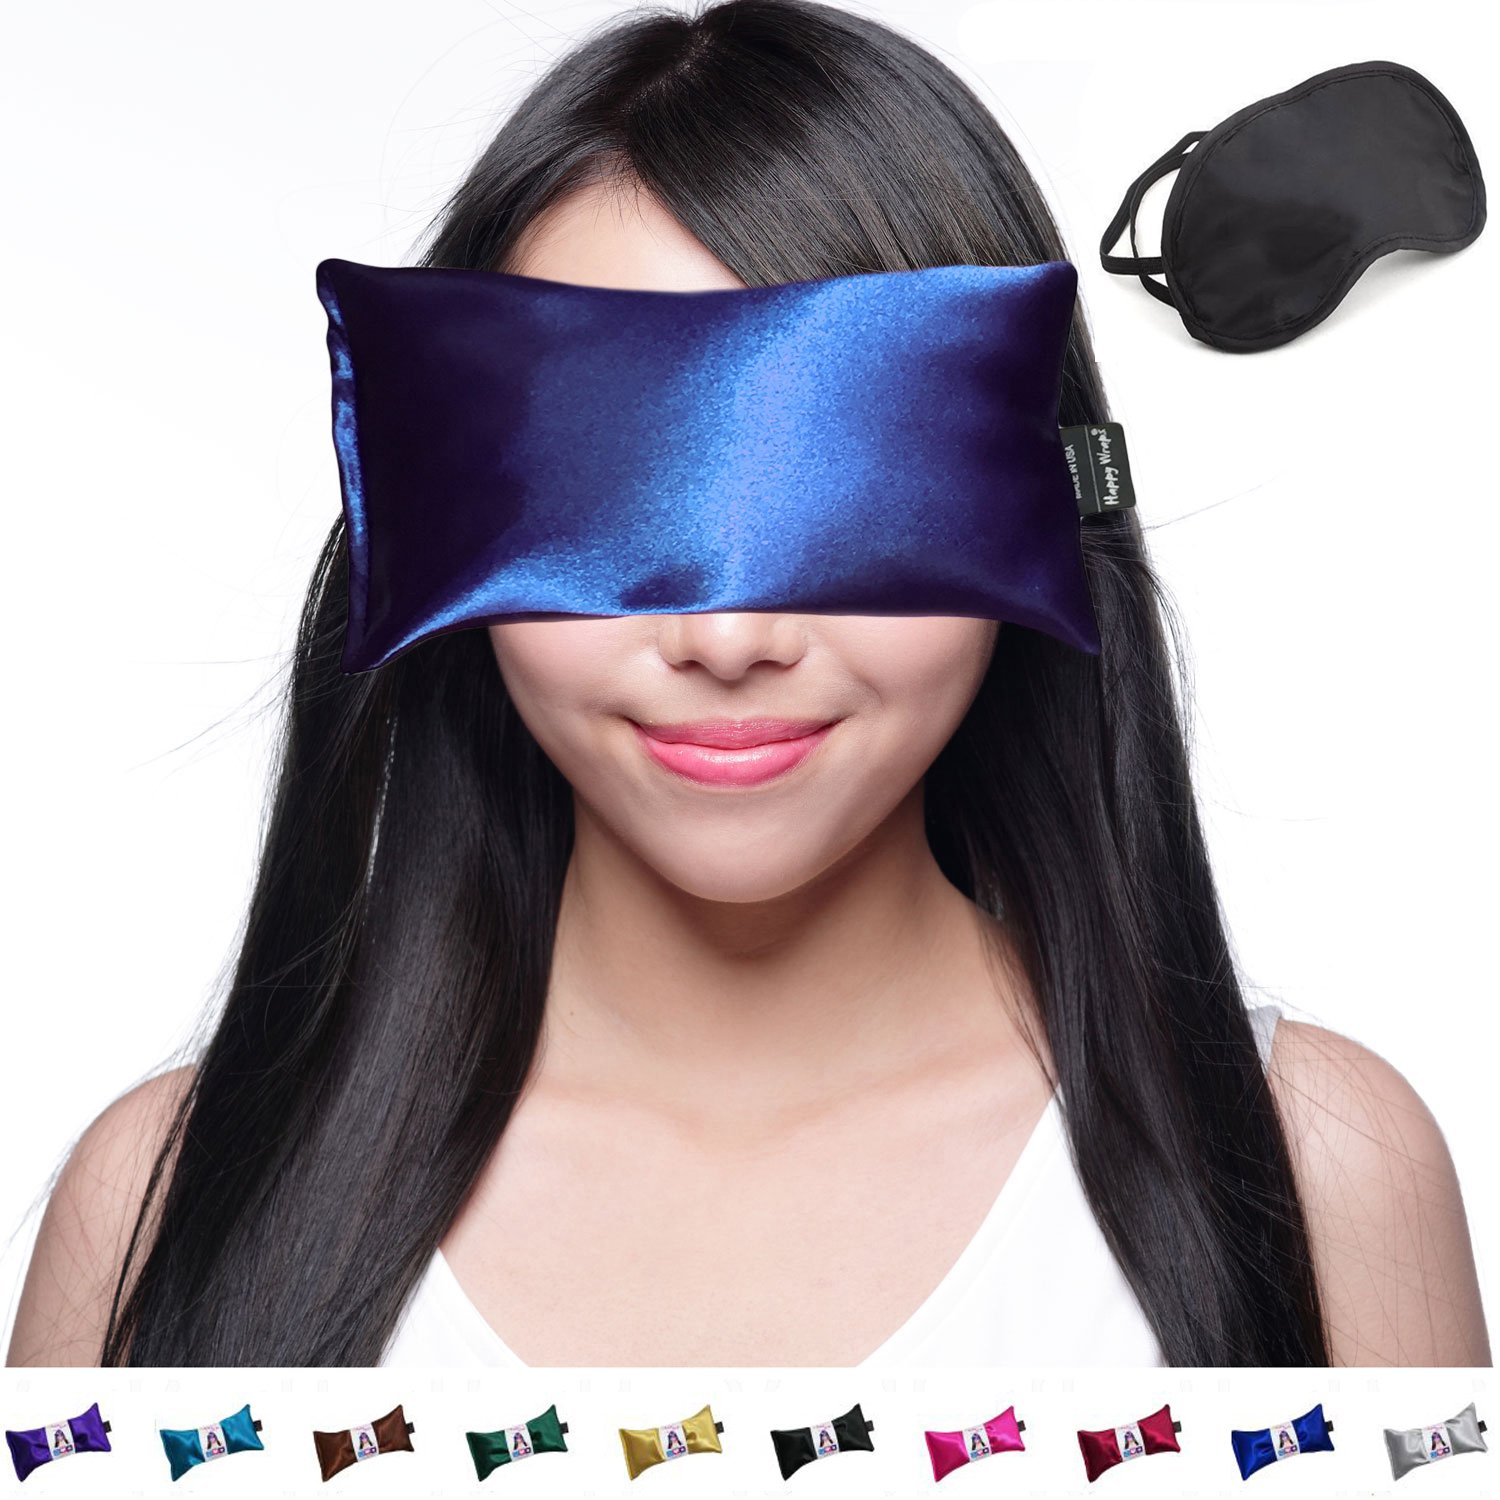 Hot Cold Lavender Eye Pillow and Eye Mask for Sleep, Yoga, Migraine Headaches, Stress Relief. By Happy Wraps - Sapphire